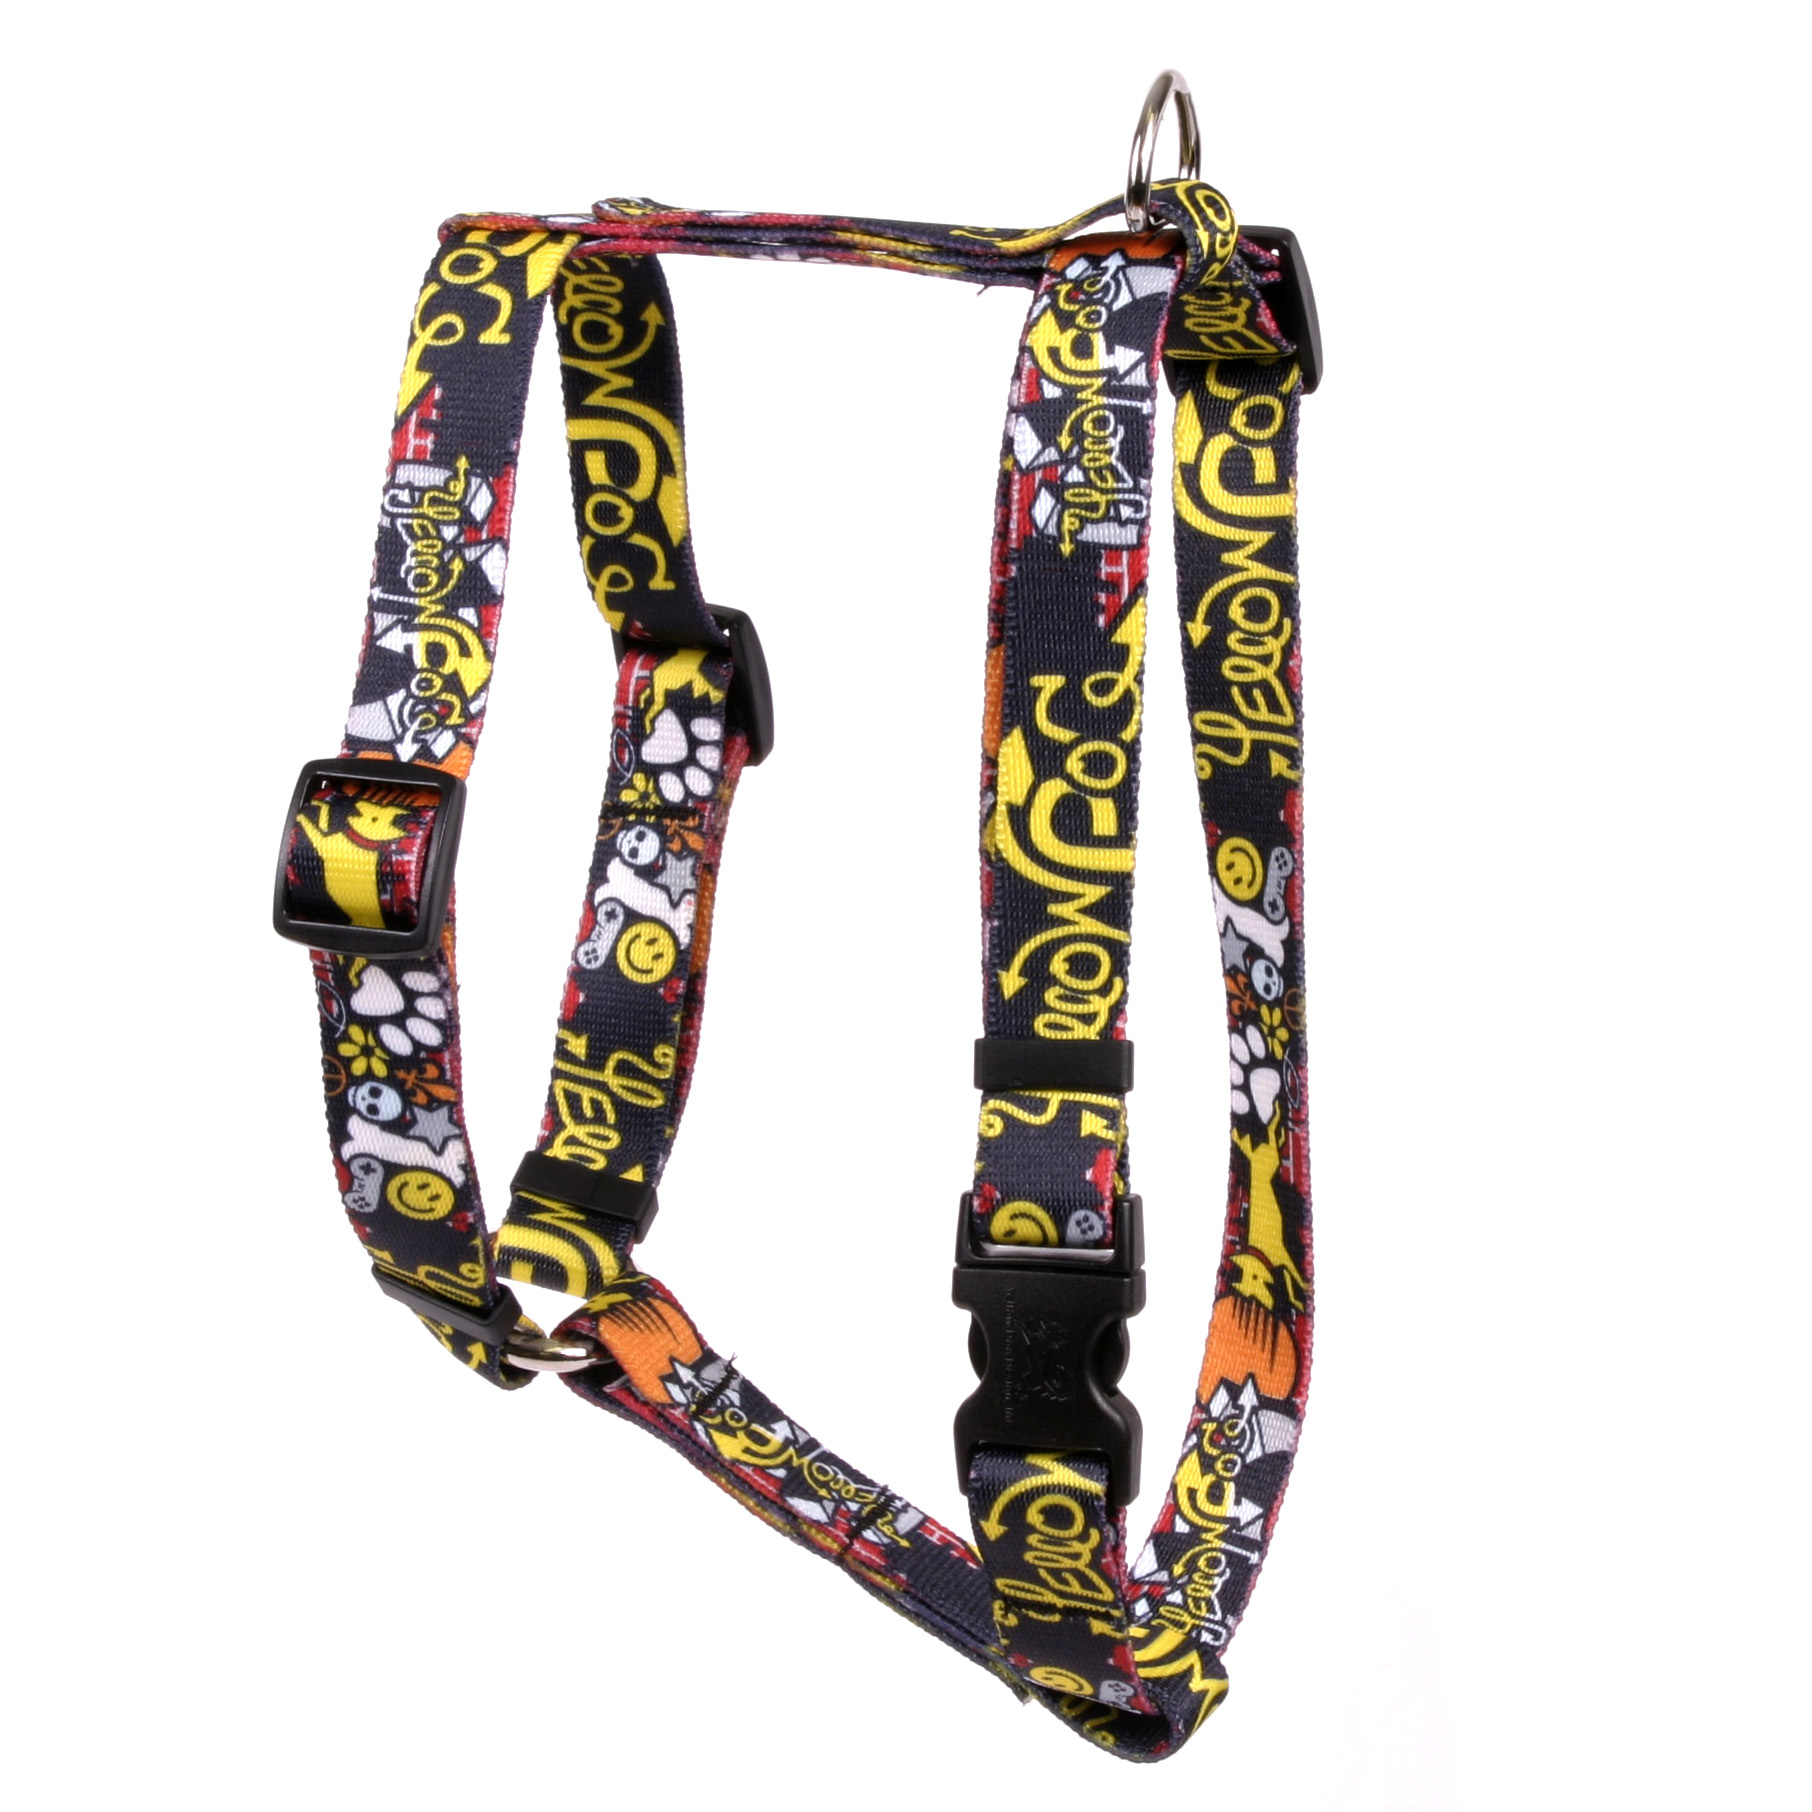 Graffiti Dog Roman H Harness